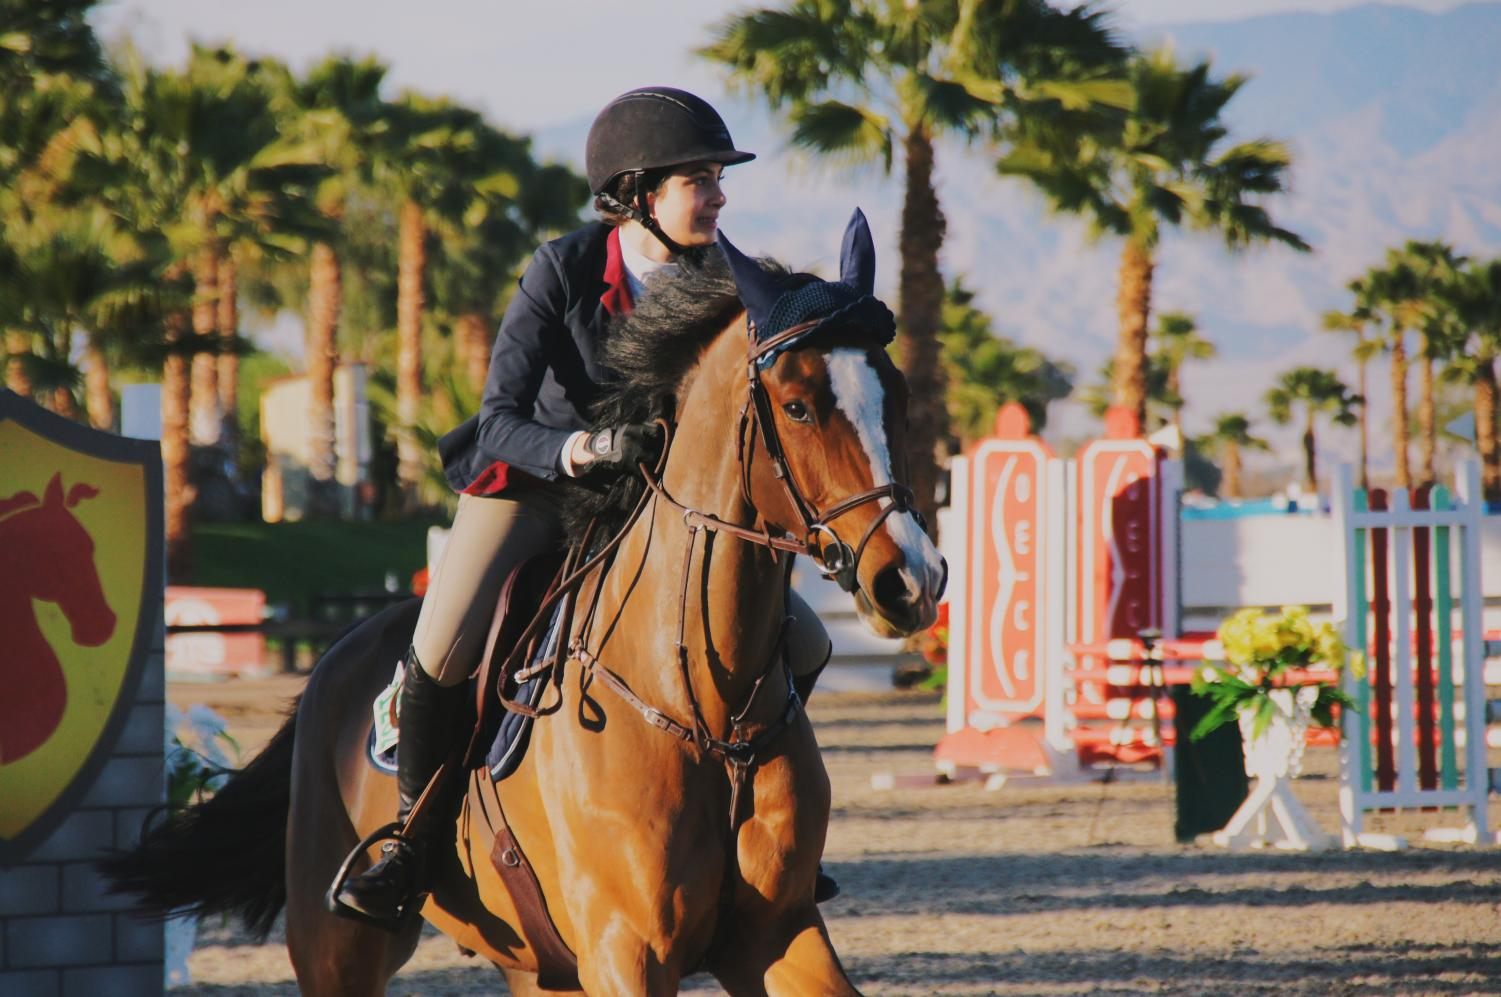 Junior Sofia Pirri competes in the Thermal Horse Show in Southern California, placing fifth. She has been riding competitively for four years.